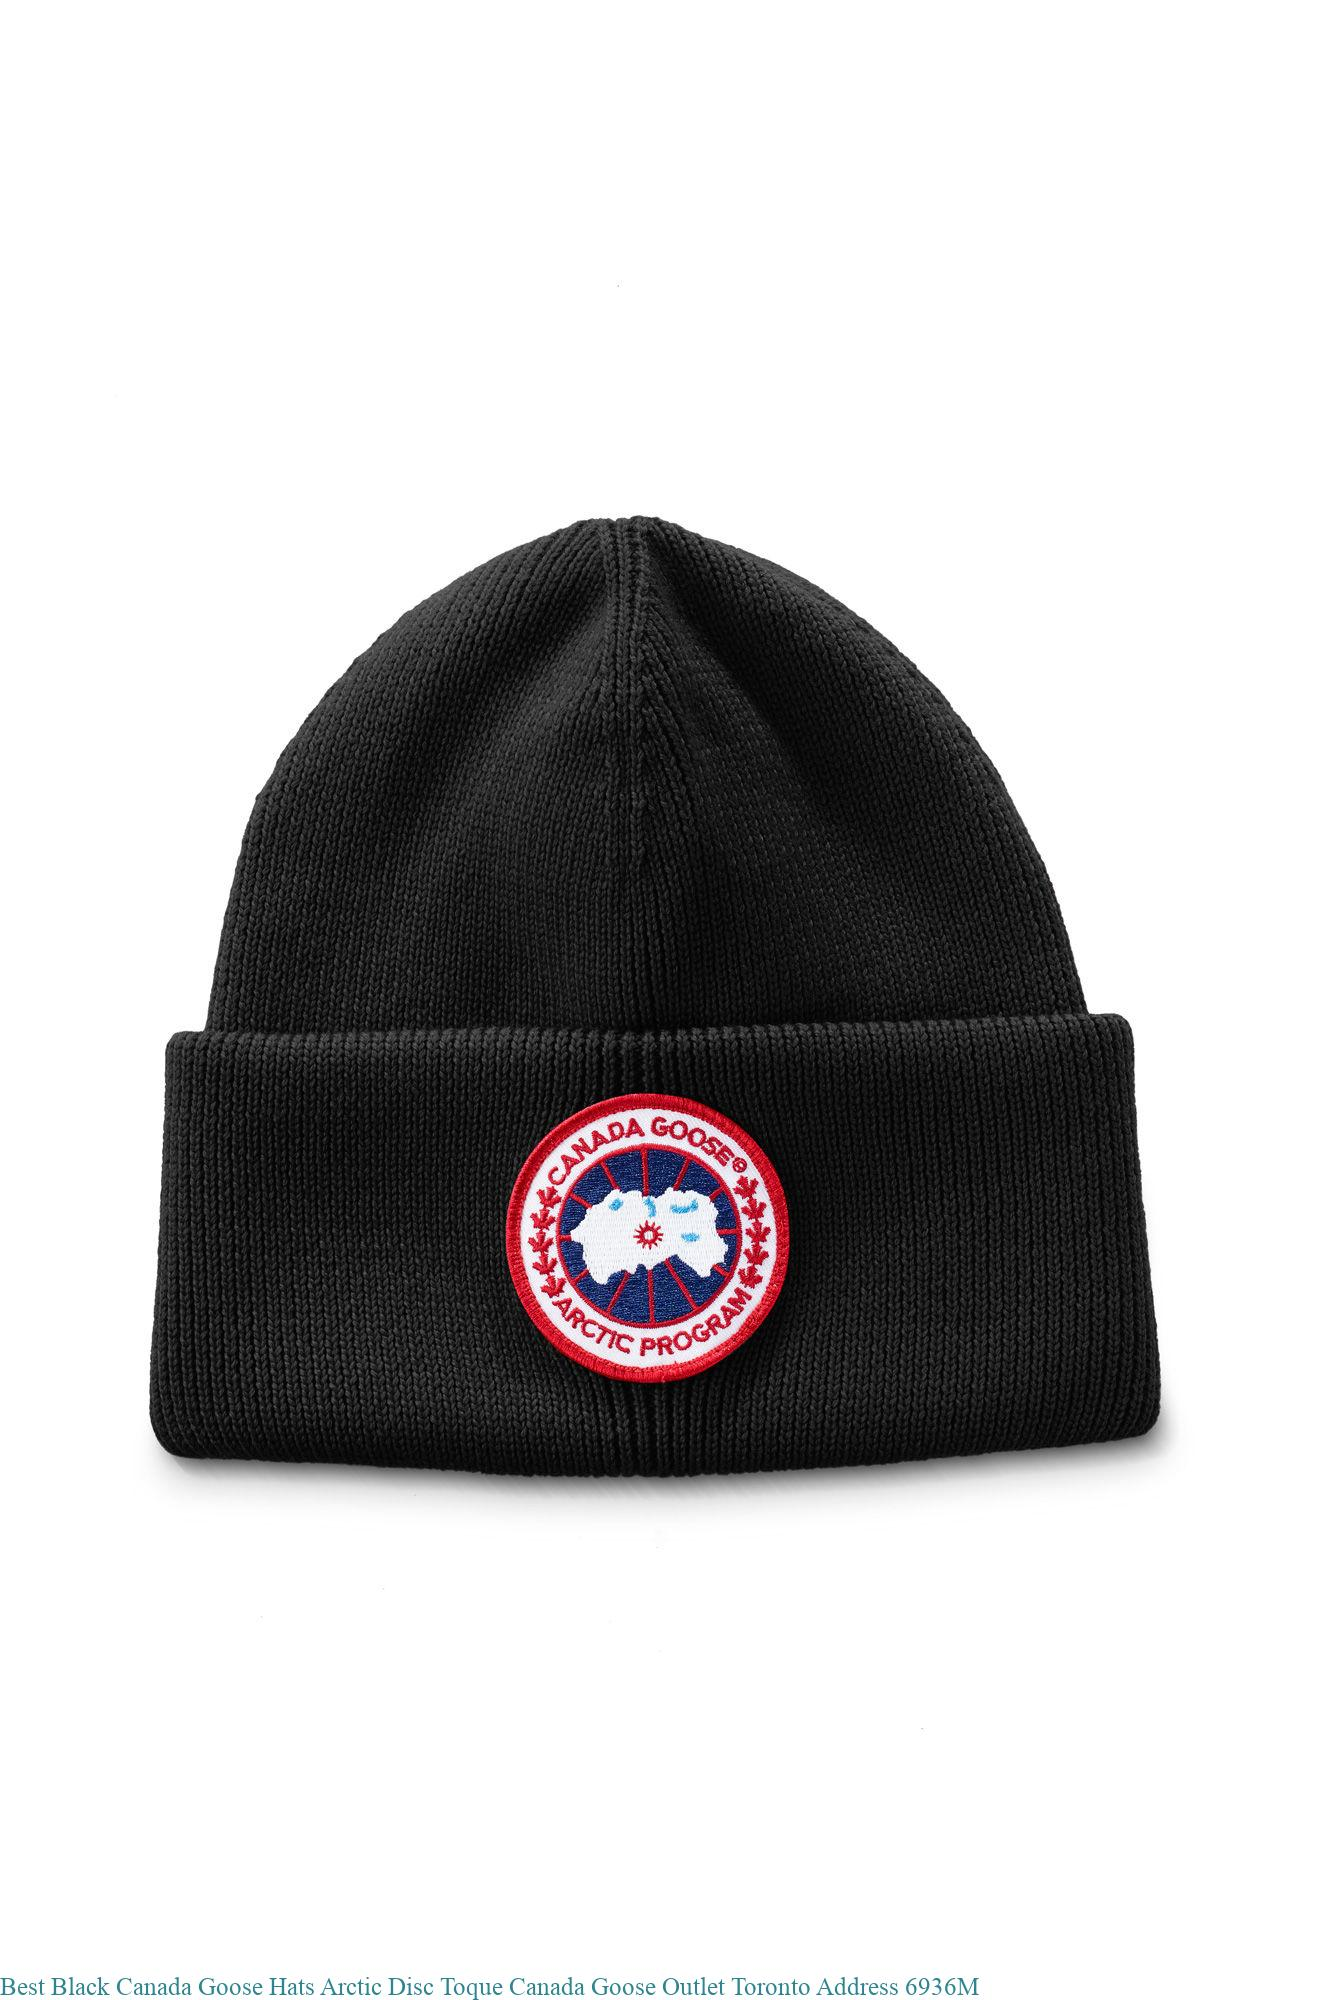 d0a1aae3e99 Best Black Canada Goose Hats Arctic Disc Toque Canada Goose Outlet Toronto  Address 6936M – Cheap Canada Goose Outlet Store Jacket Expedition Parka Sale